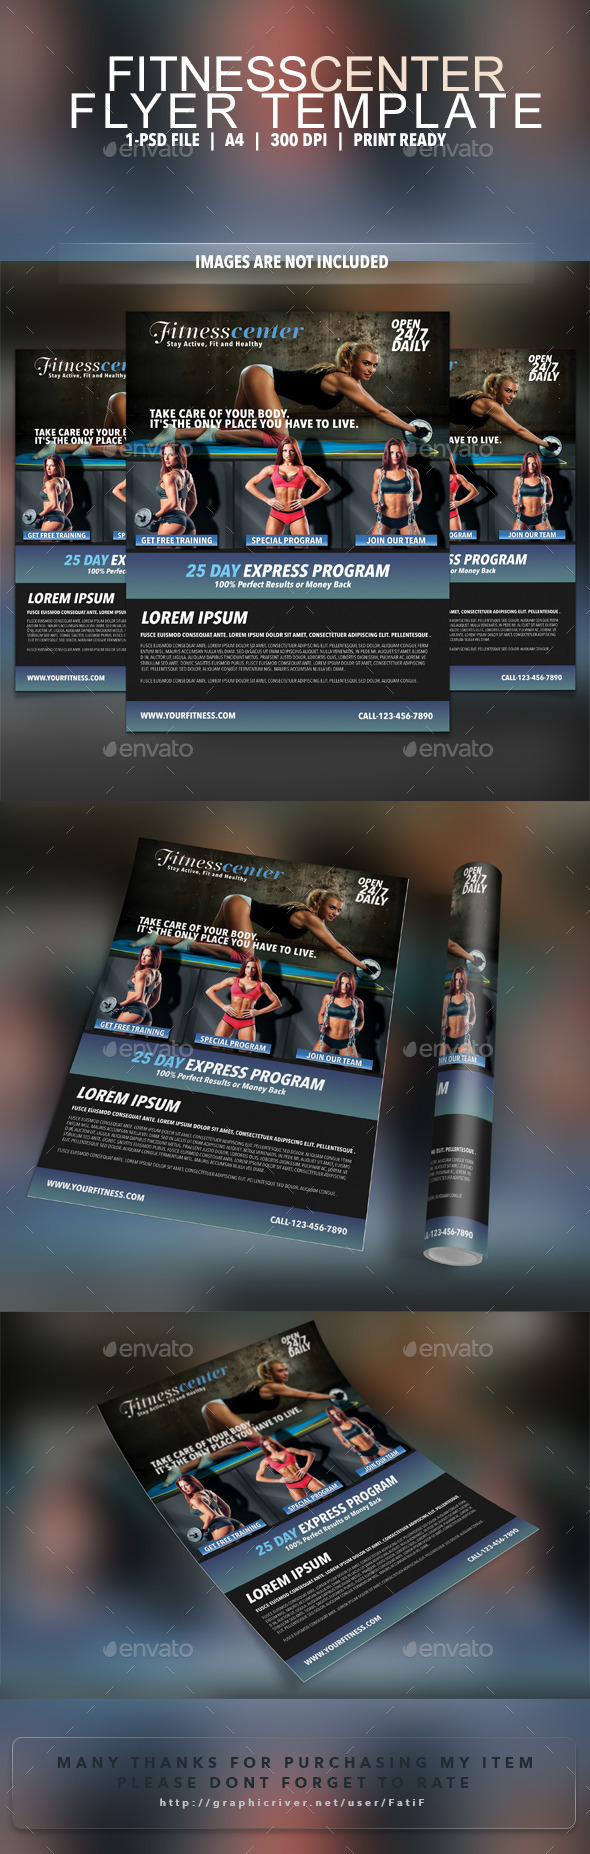 Fitness Center Flyer Template - Corporate Flyers